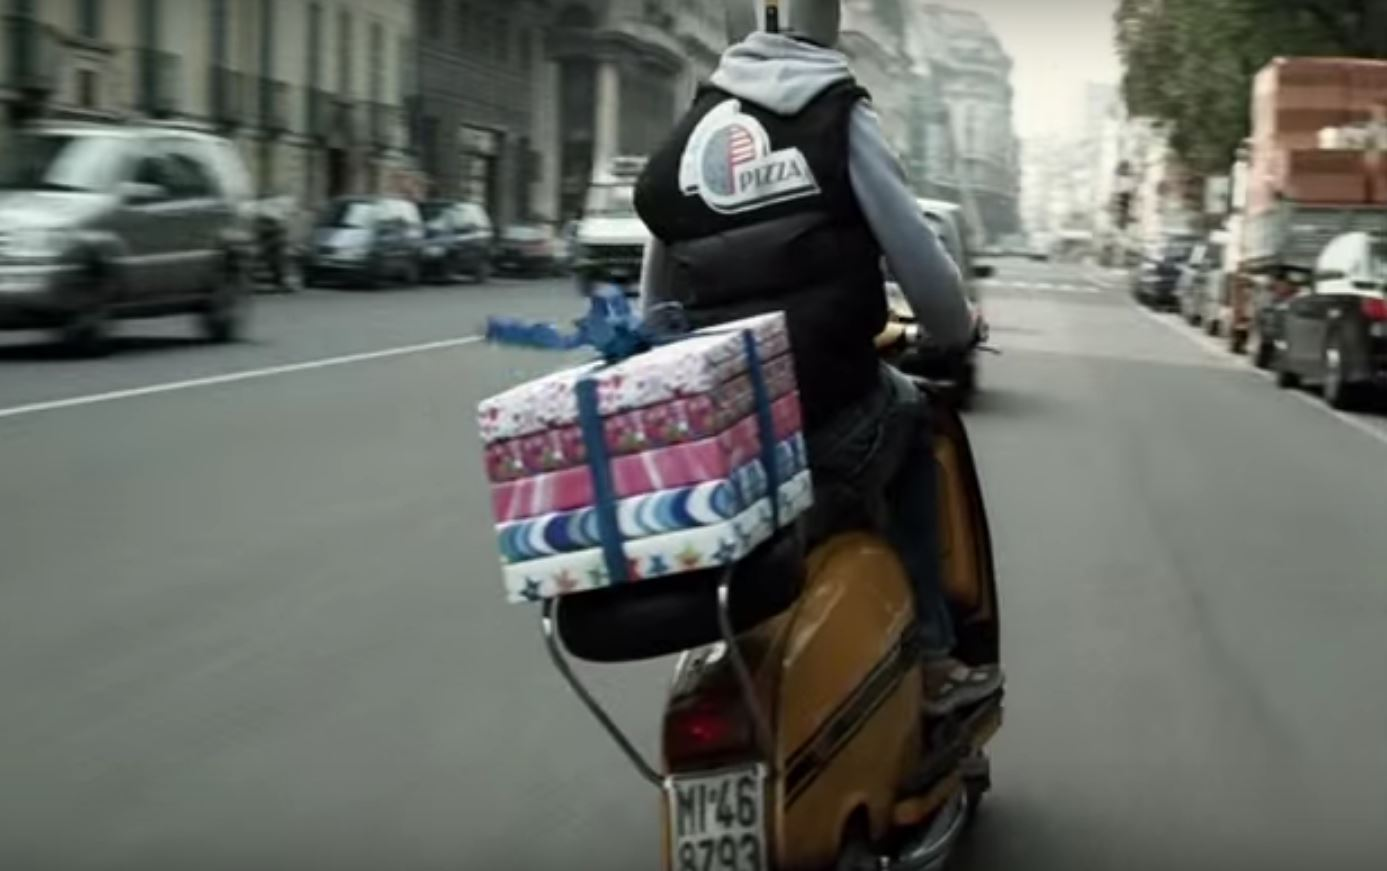 Gifts wrapped in a VISA commercial